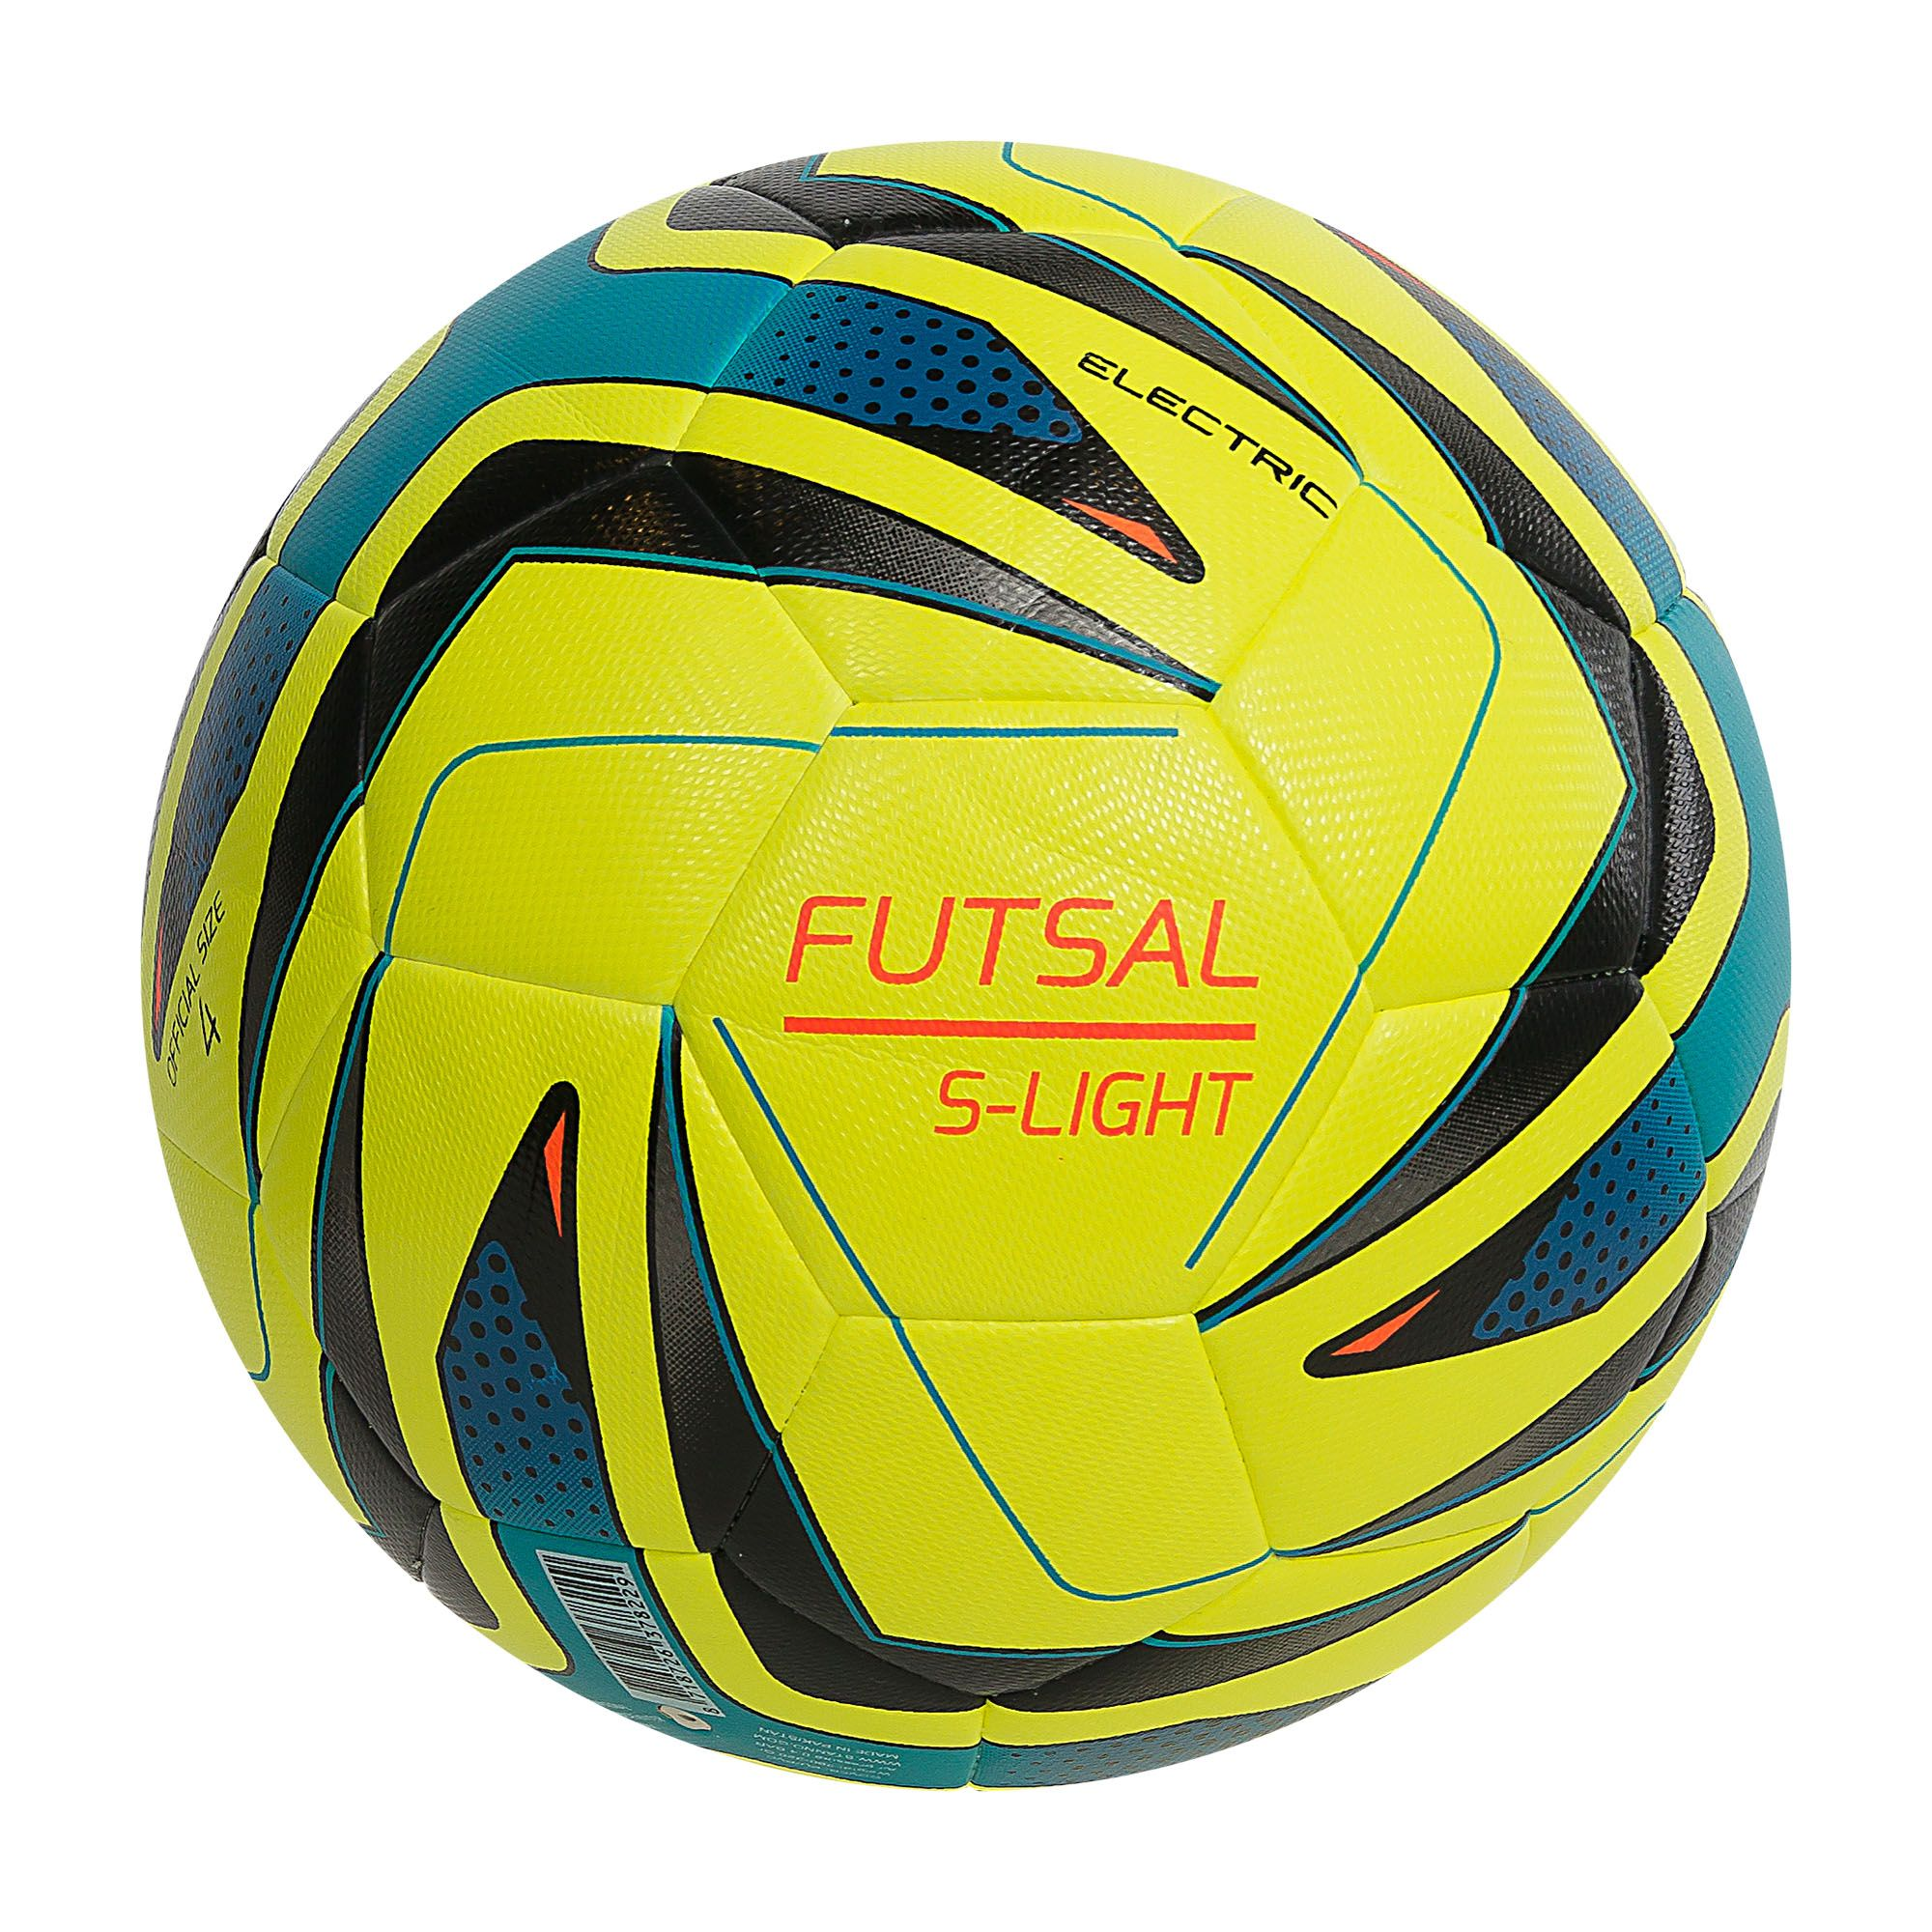 Free Weights Sports Direct: -Futsal Electric Super Light-486920-4000-4--Stanno.com